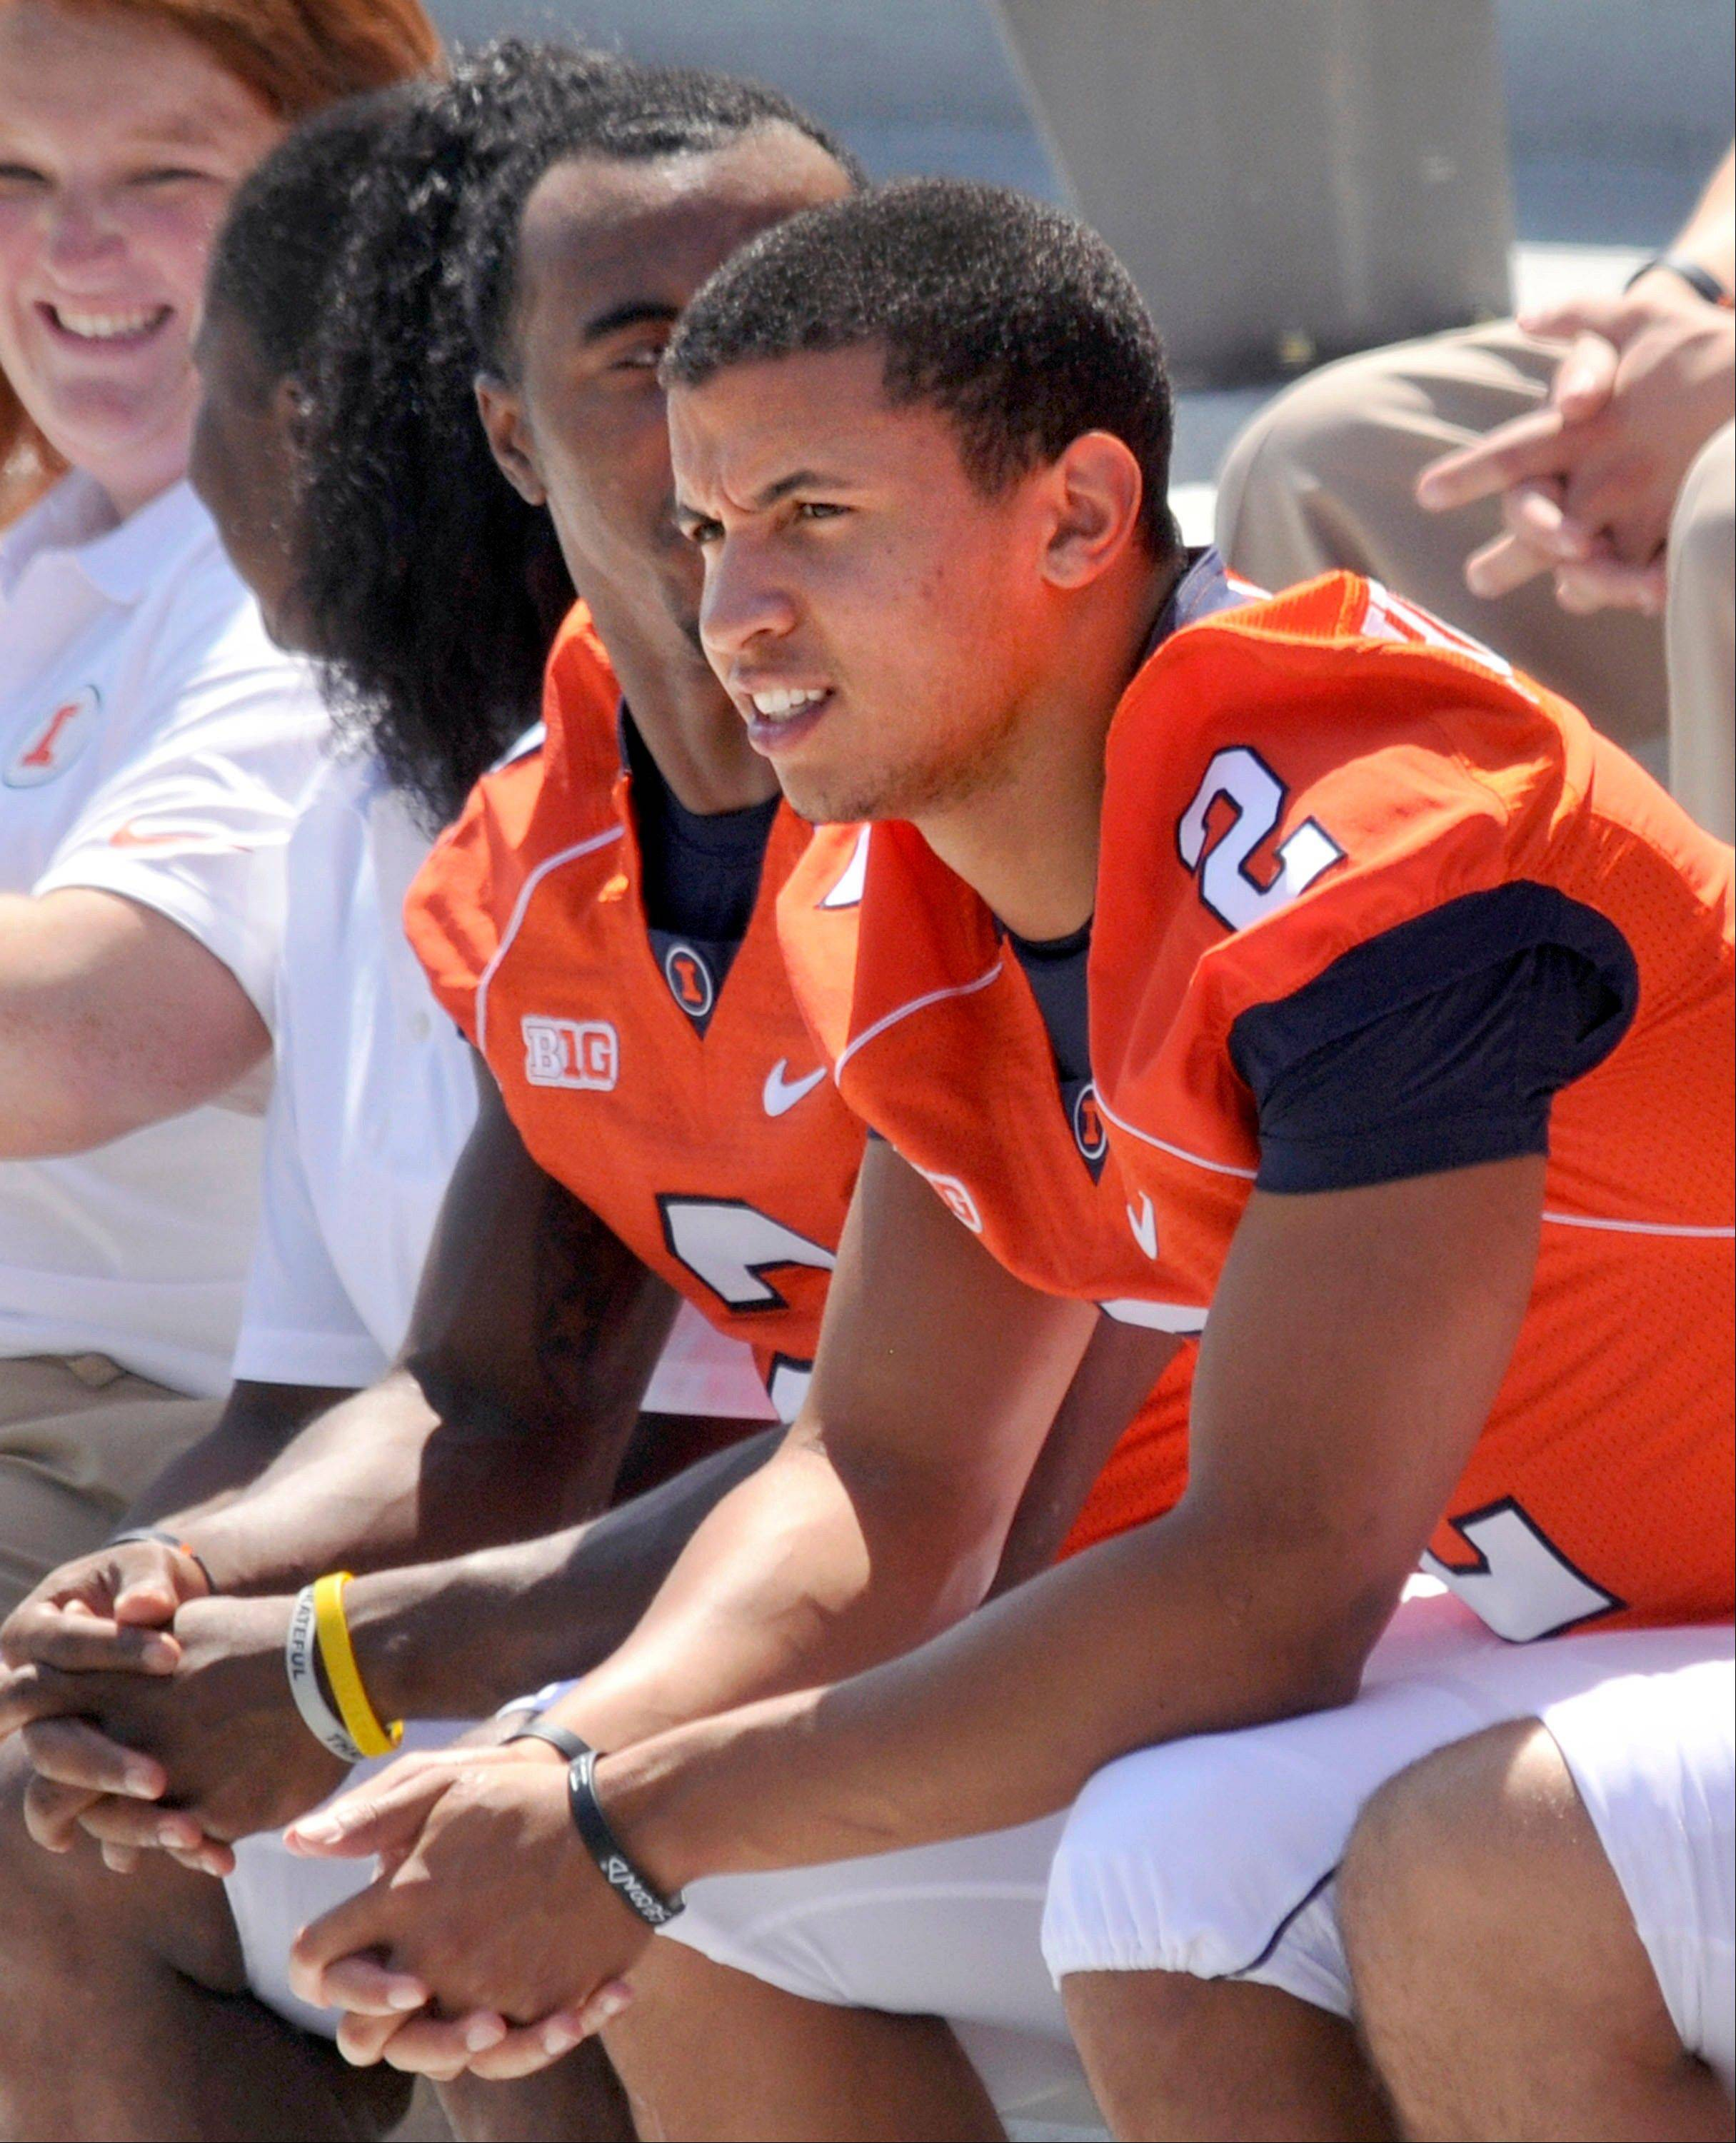 Illinois quarterback Nathan Scheelhaase, right, waits patiently with teammates, including V�Angelo Bentley, for a team photo Sunday during media day at Memorial Stadium in Champaign. Coach Tim Beckman says Scheelhaase is his starter, but there�s already speculation that fans will see freshman Aaron Bailey.